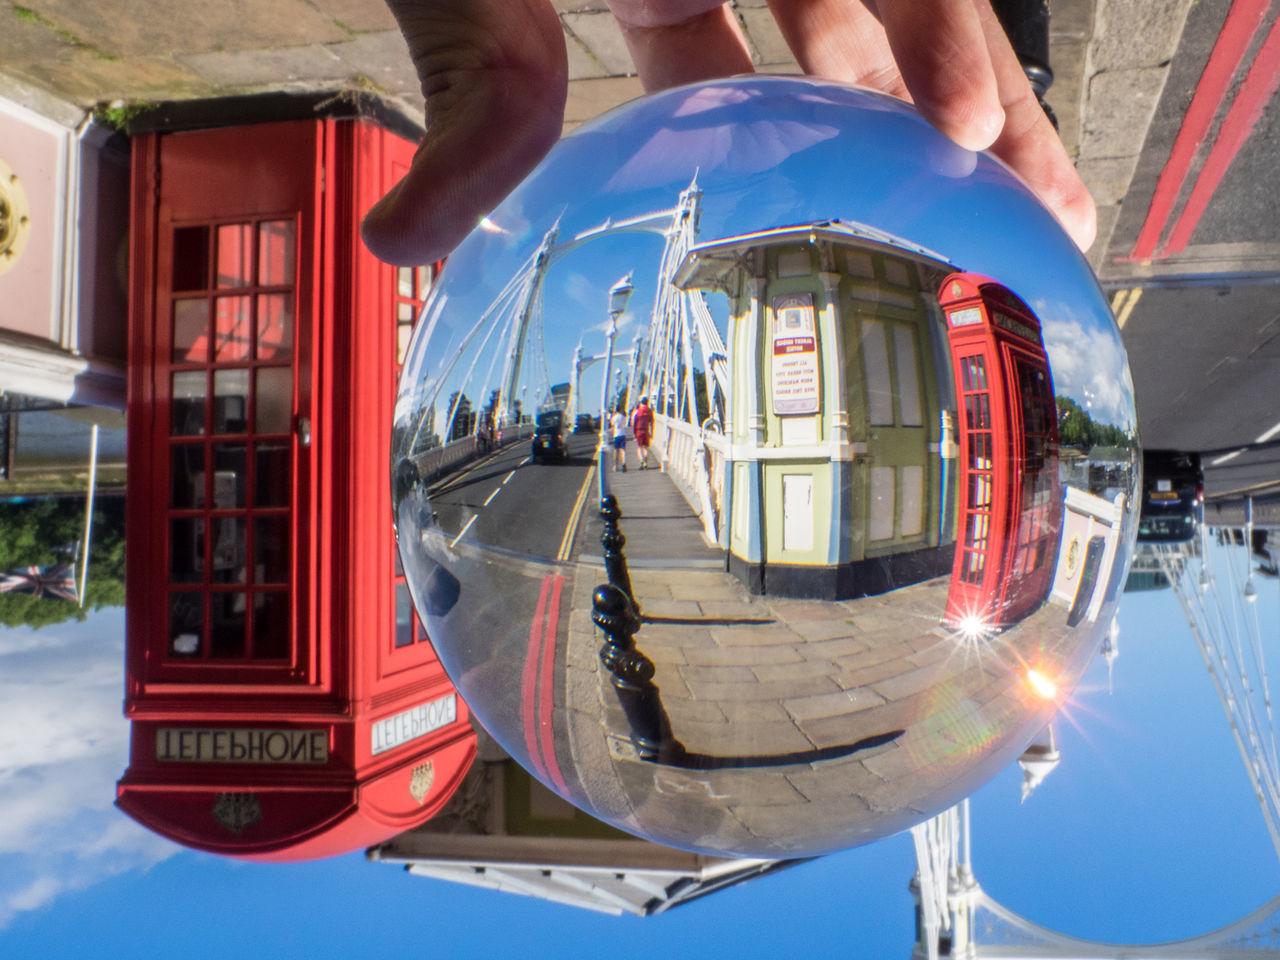 My favourite bridge over the Thames, seen through a crystal ball. Albert Bridge Architecture Architecture Bridge Britain Capital Copy Space Crystal Ball Day England Famous Place Human Hand London No People Outdoors Suspension Bridge Telephone Booth Tourism Transportation United Kingdom